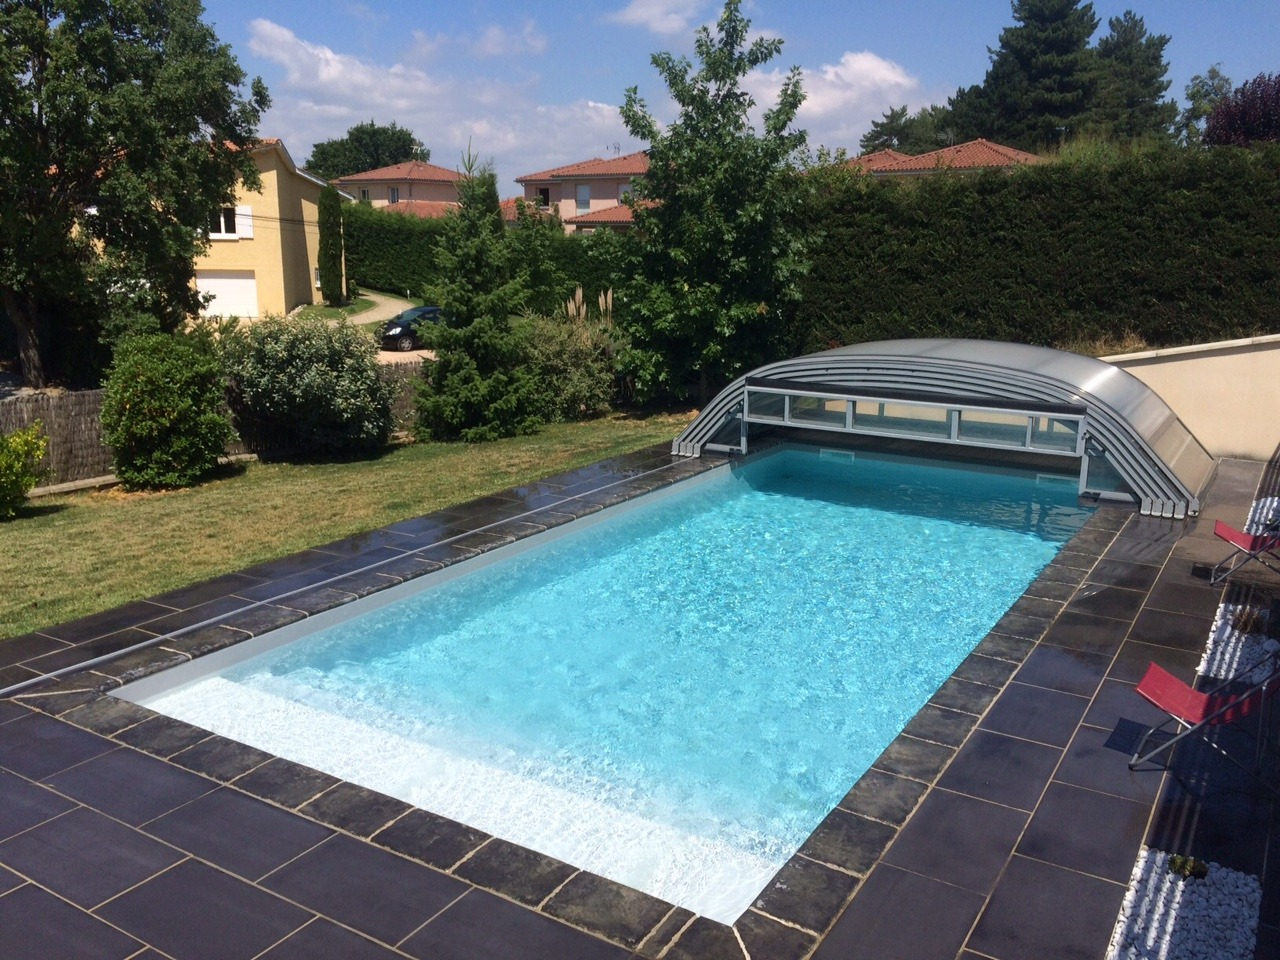 Elitys Mianso Abri De Piscine Bas T Lescopique Ec 39 Creation